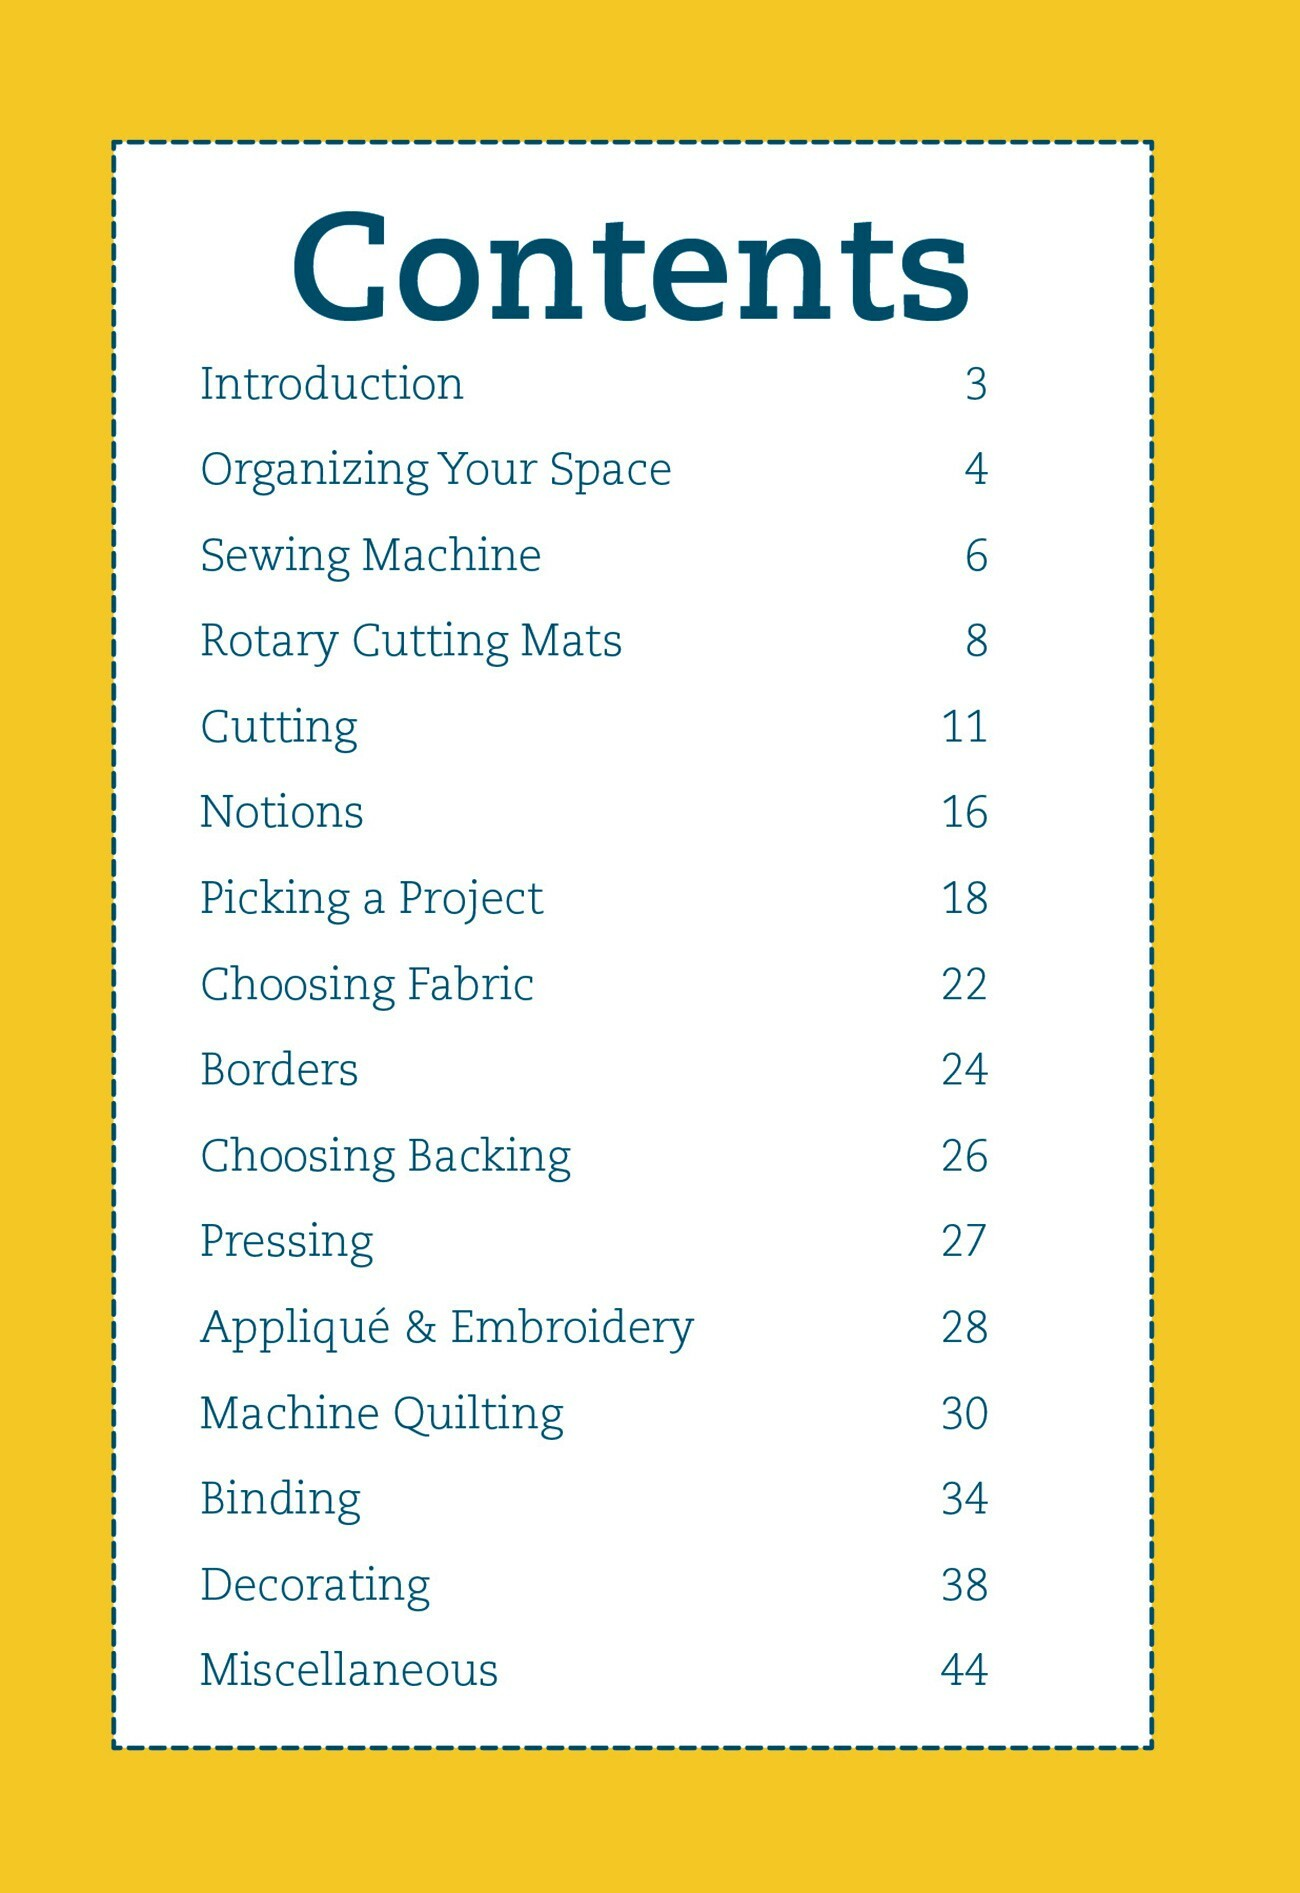 Pocket Guide to Quilting: Tips and Tricks